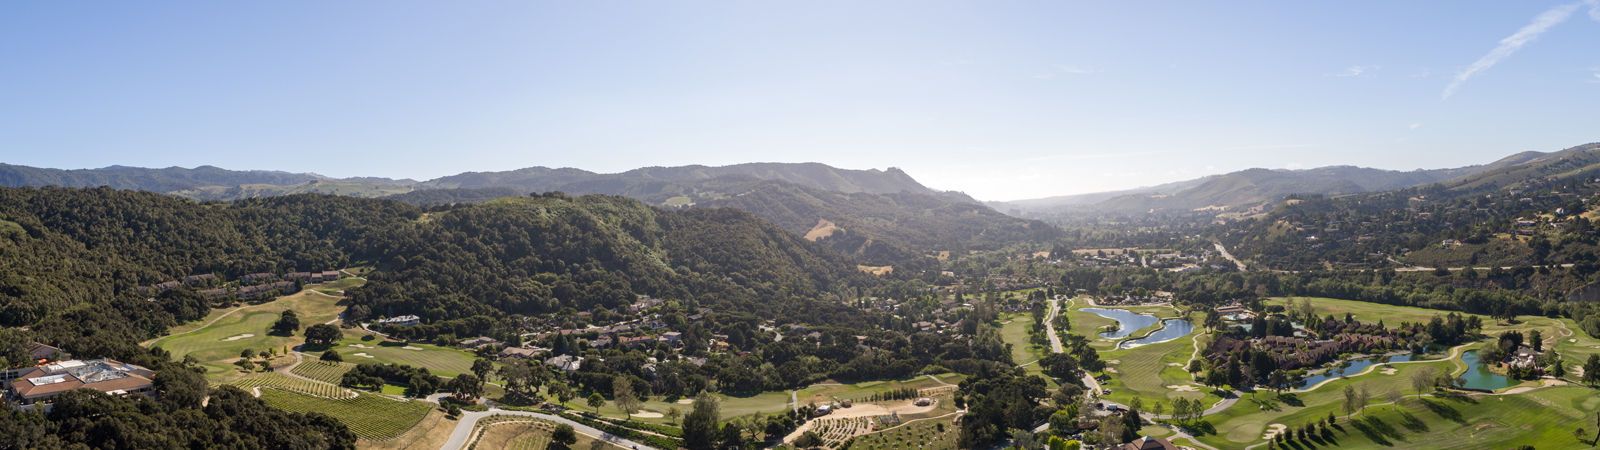 Carmel-Valley-Ranch_Property_Aerial_facing-west_pano_LG-Drone-1600